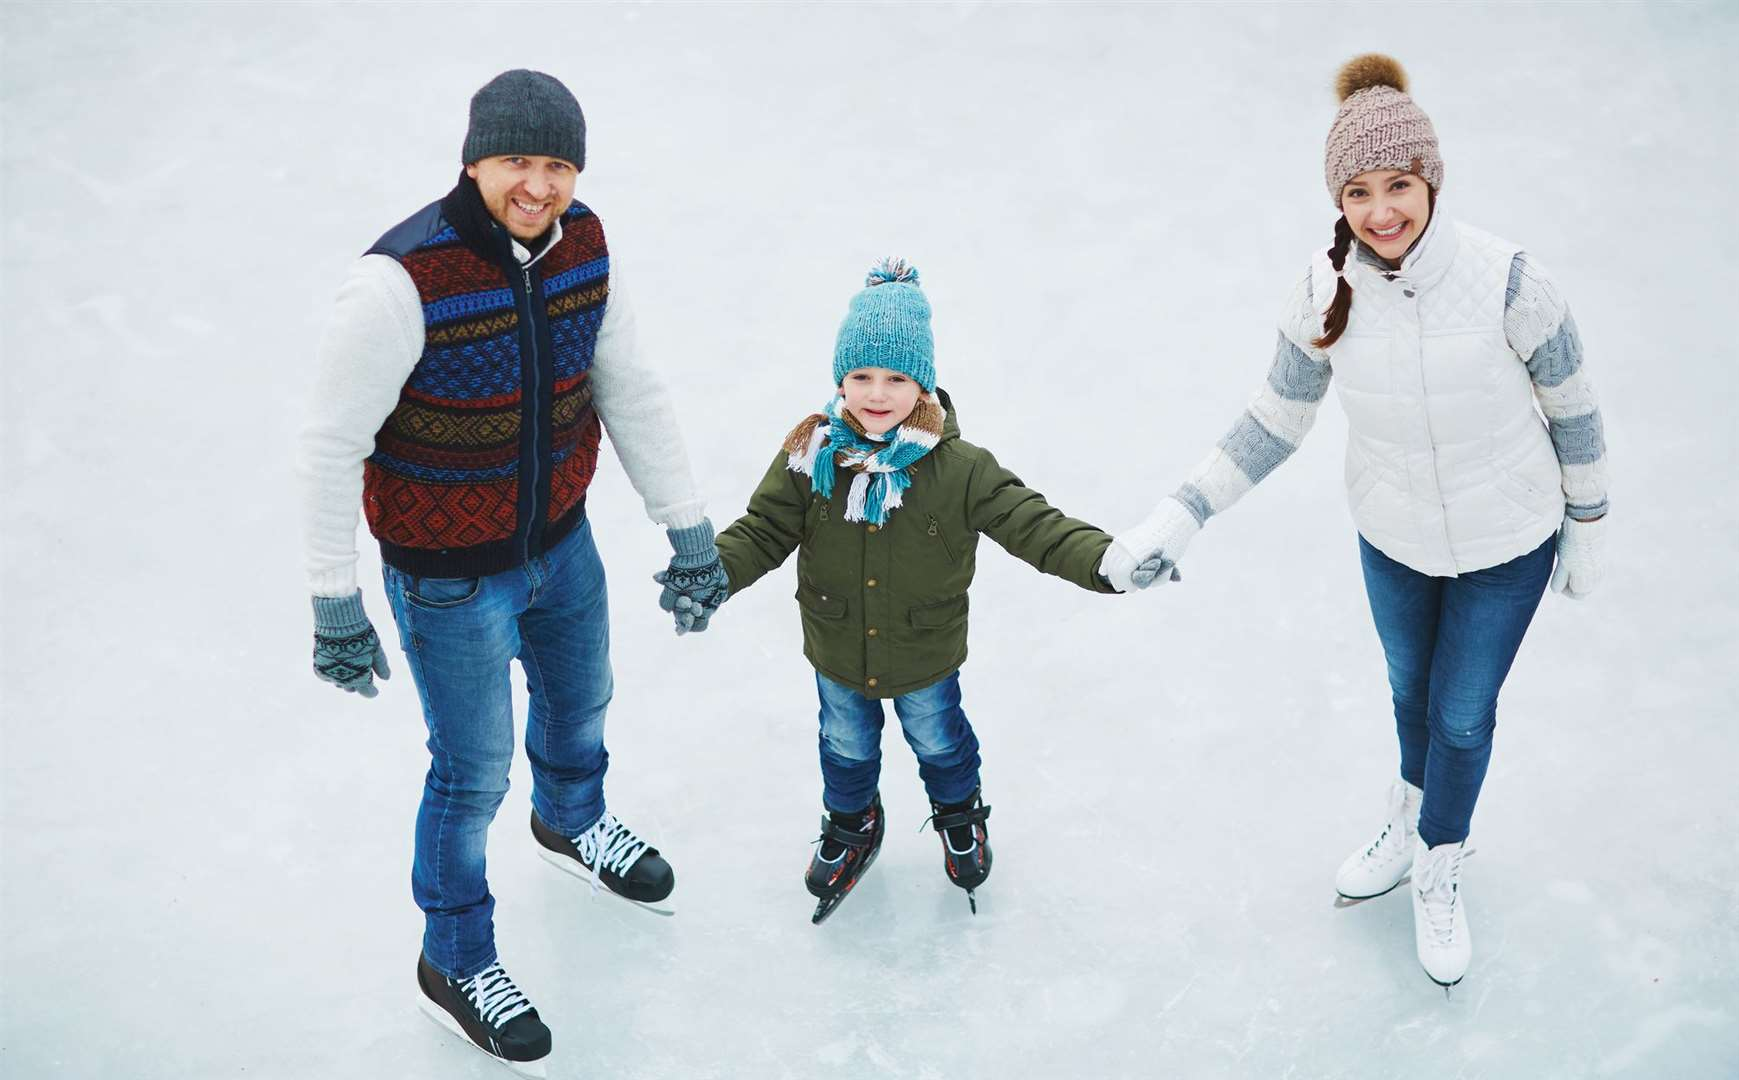 Ice skating for all ages will be on offer with Skate in Tunbridge Wells